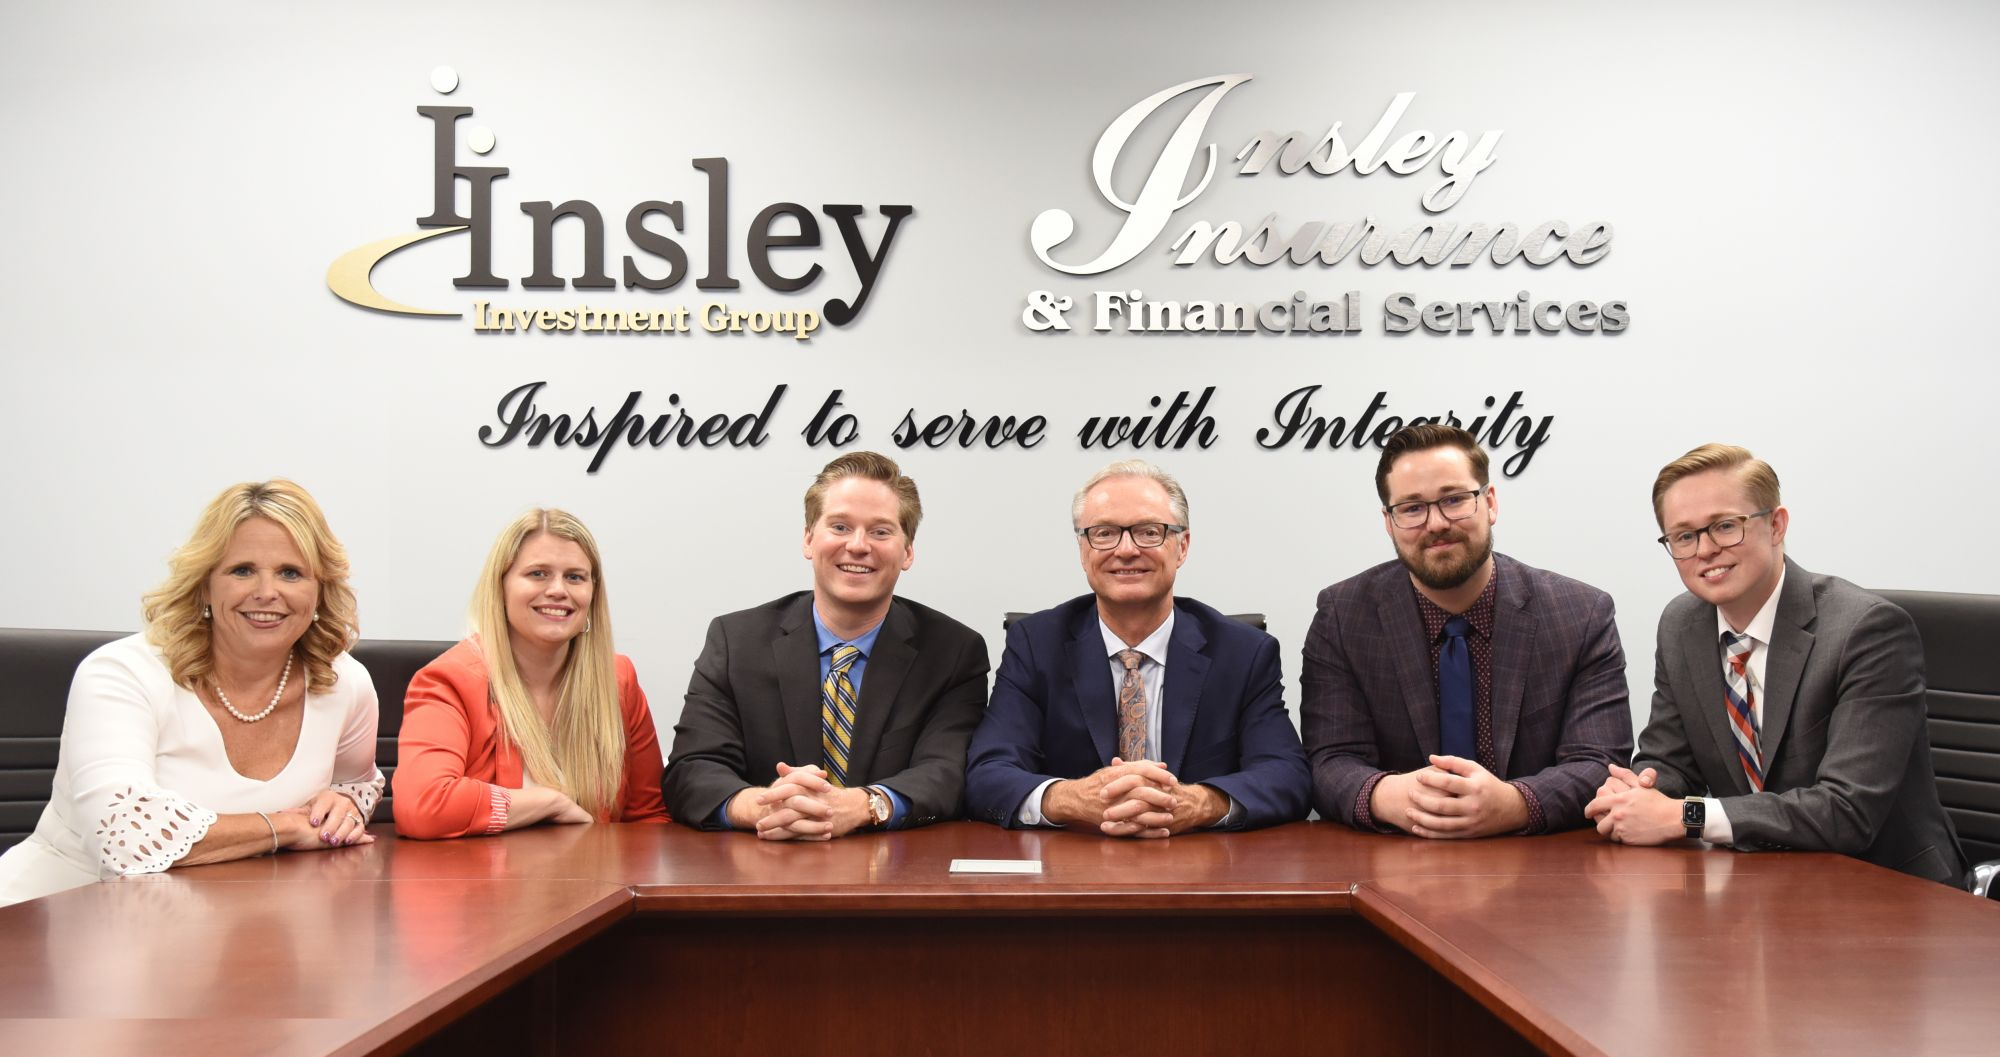 Insley Insurance